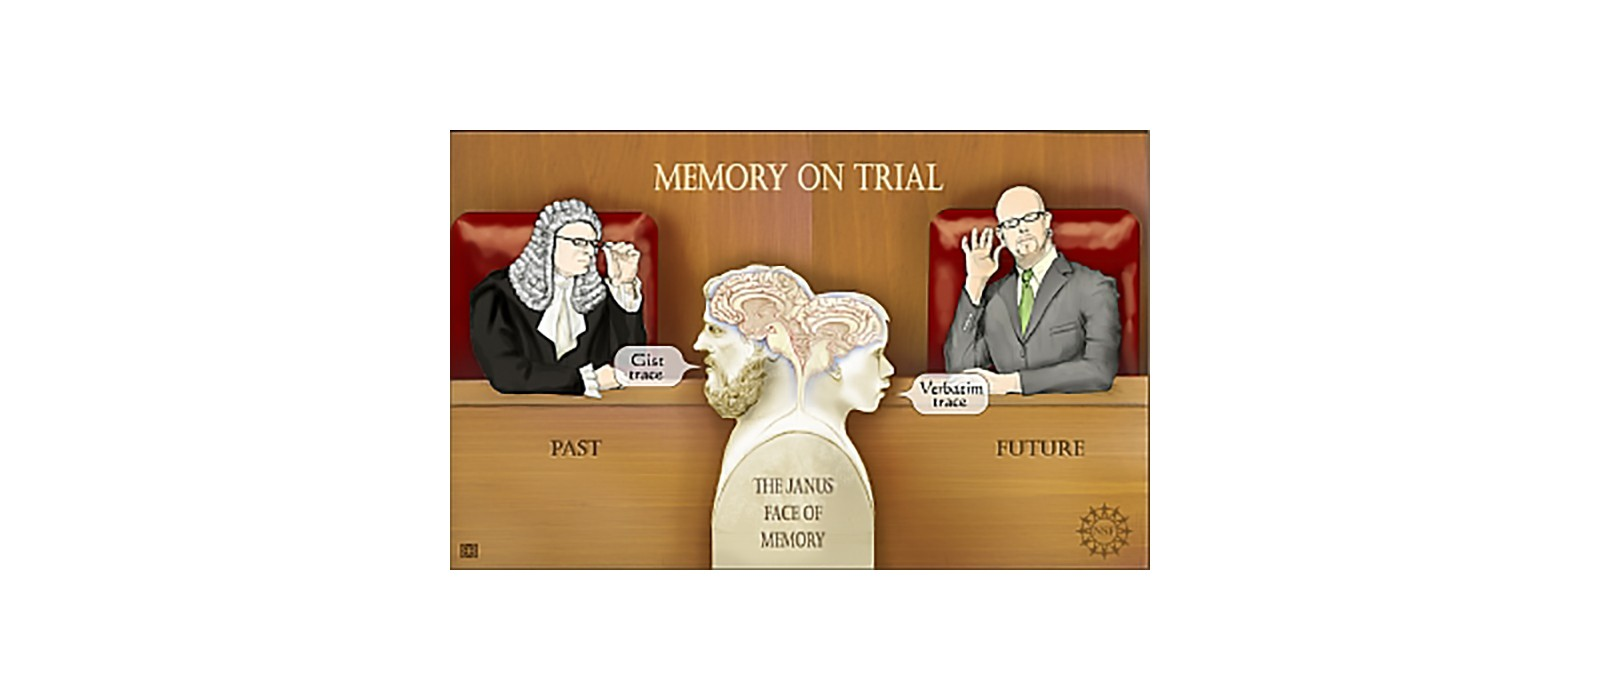 Memory on trial in the courtroom